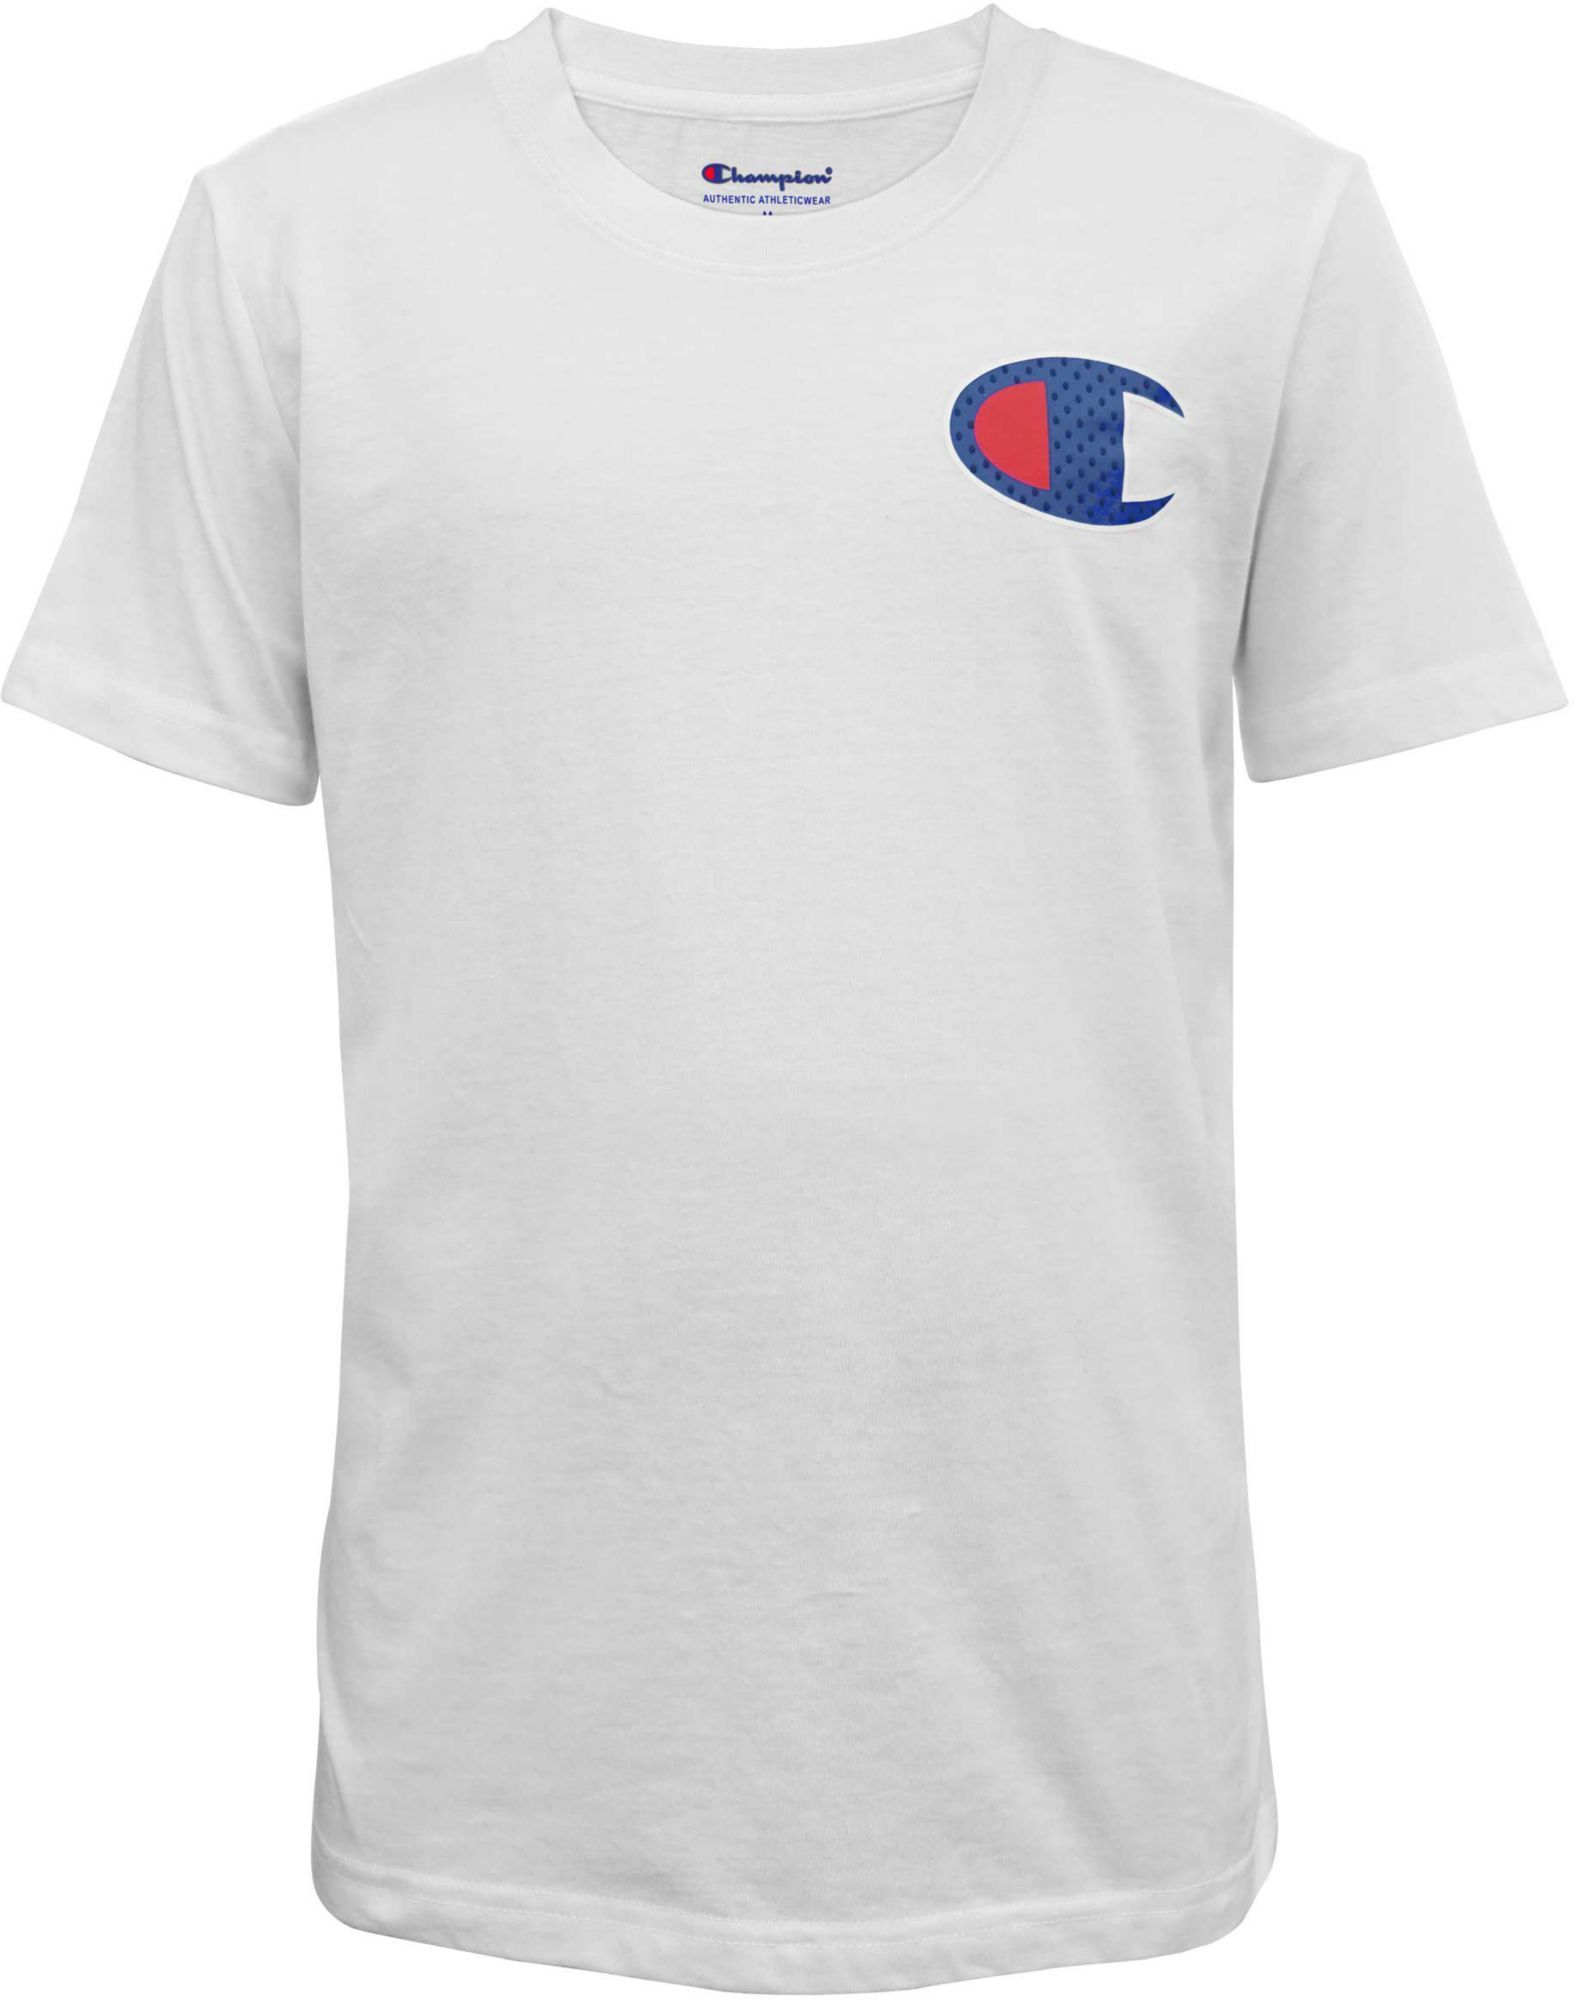 1a397adf2 Champion Boys' Textured C Logo T-Shirt in 2019 | Products | Shirts ...